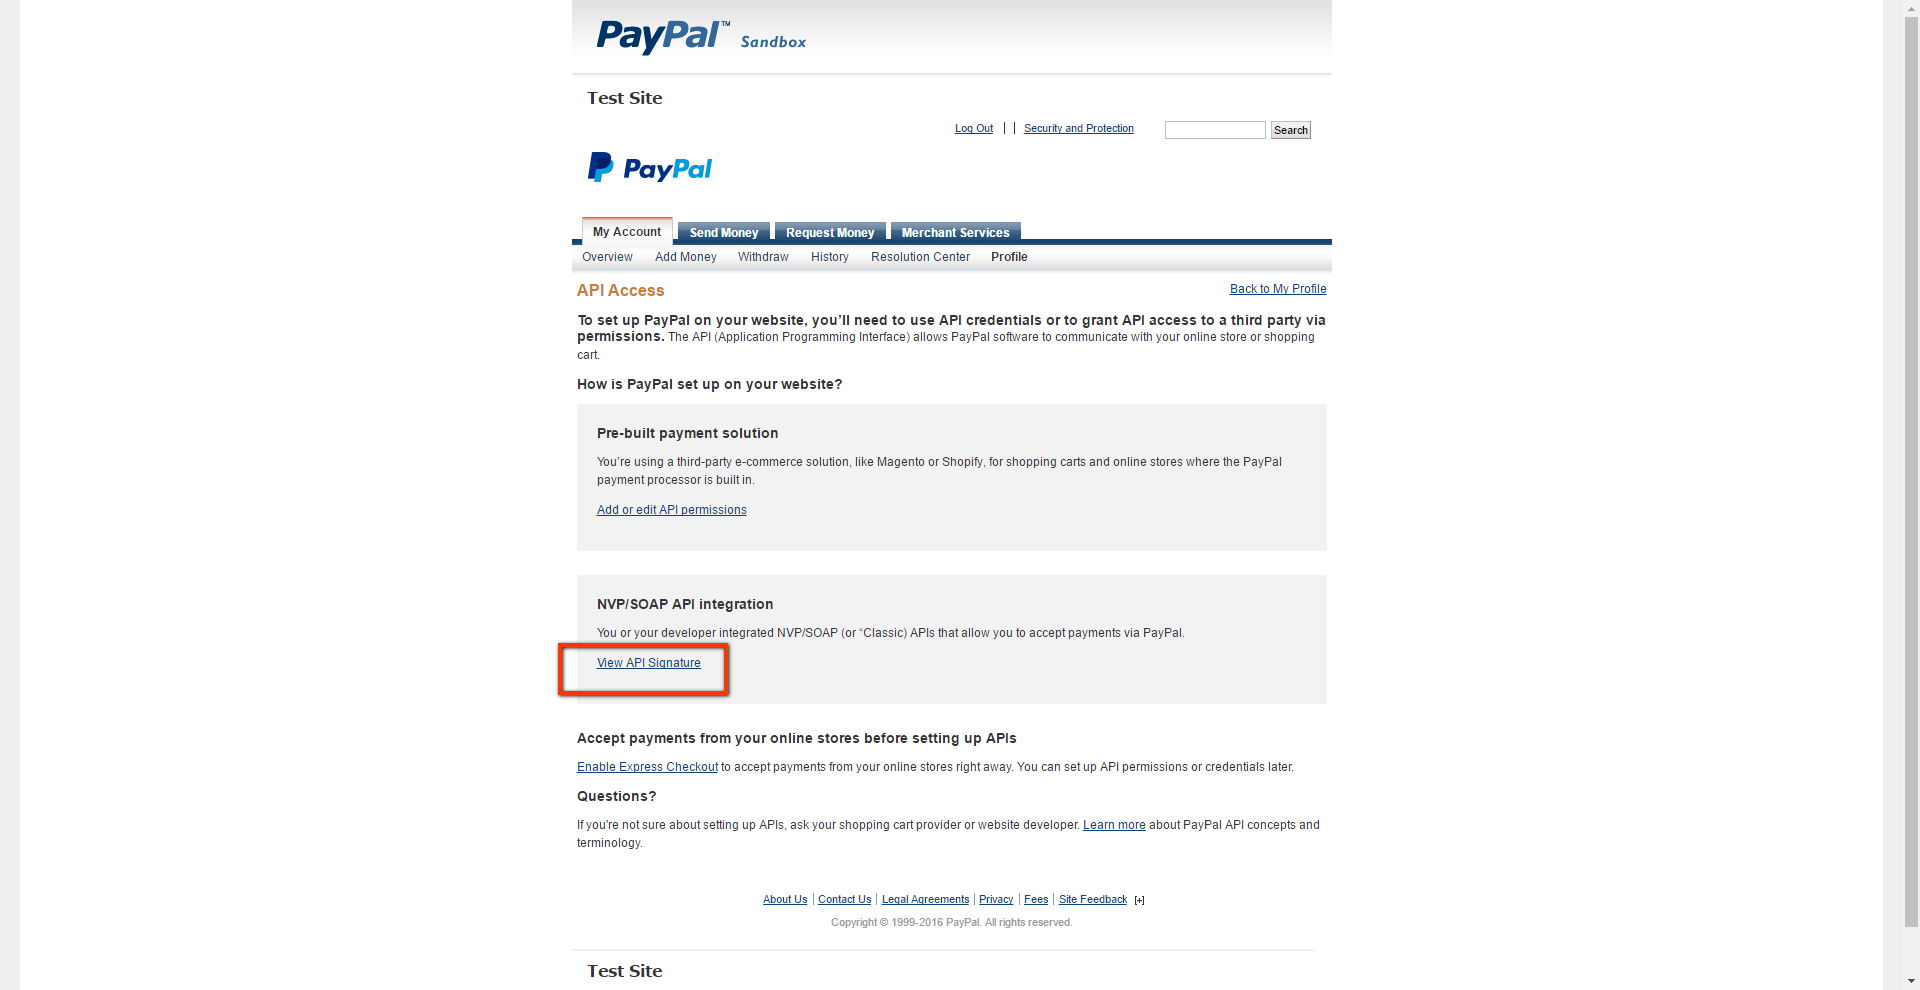 PayPal Website Payments Pro - How to obtain your API